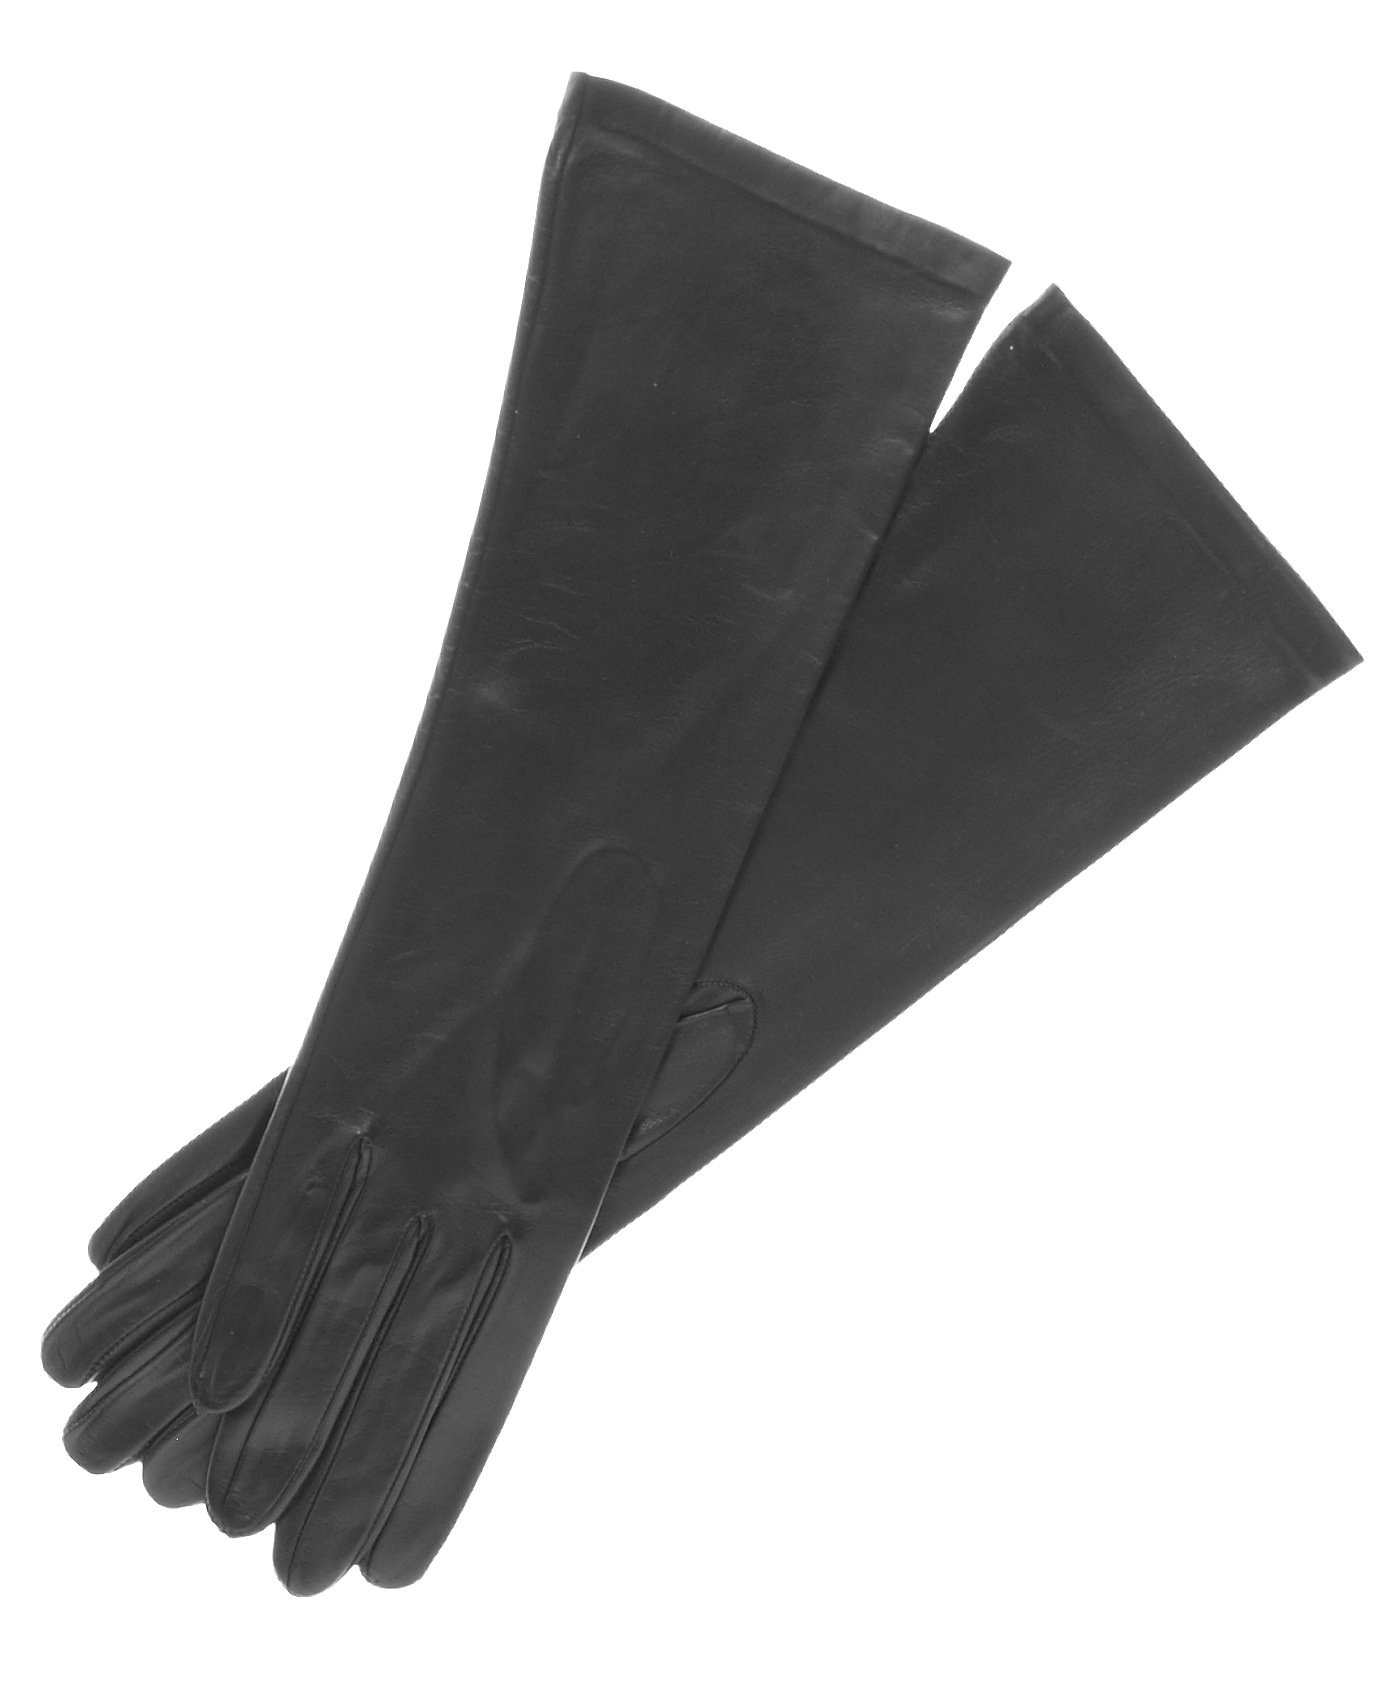 Fratelli Orsini Women's Italian ''6 Button Length'' Unlined Leather Gloves Size 8 Color Black